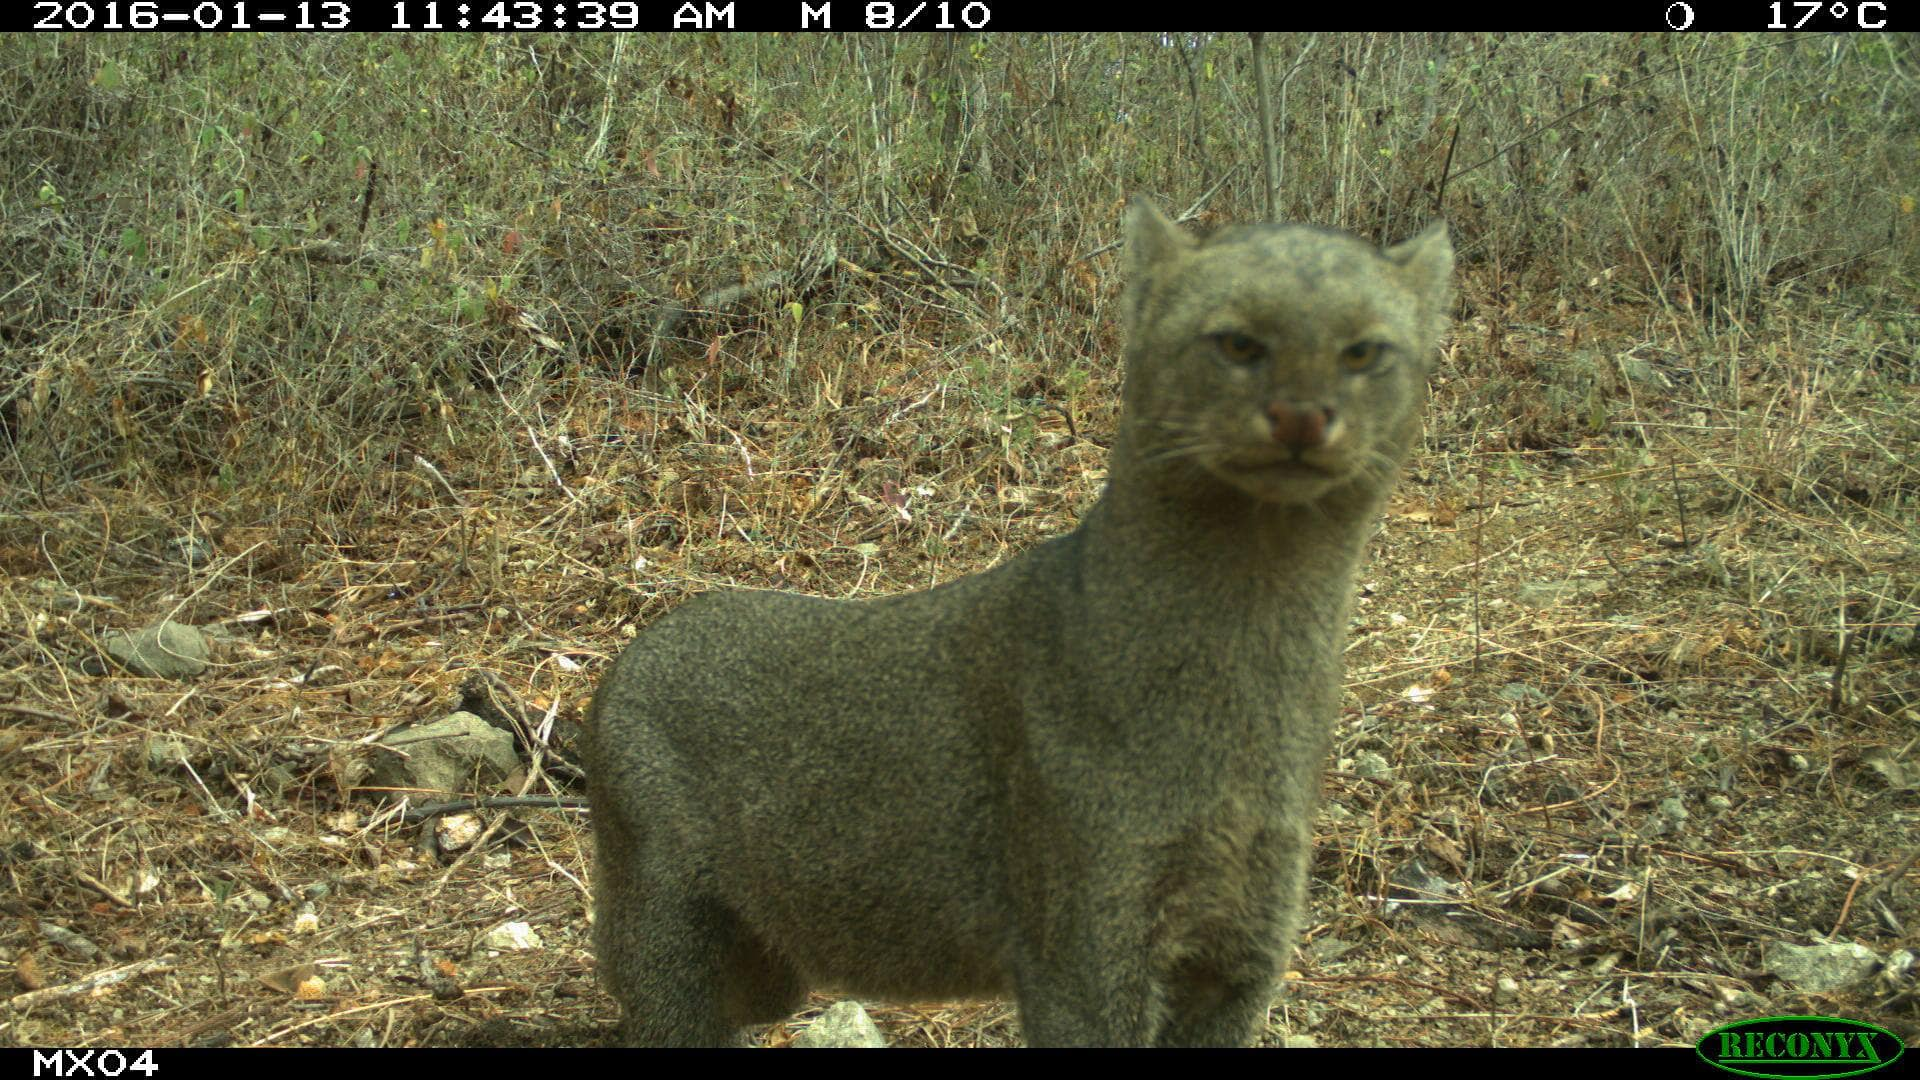 Jaguarundi Camera Trap Photos from Mexico